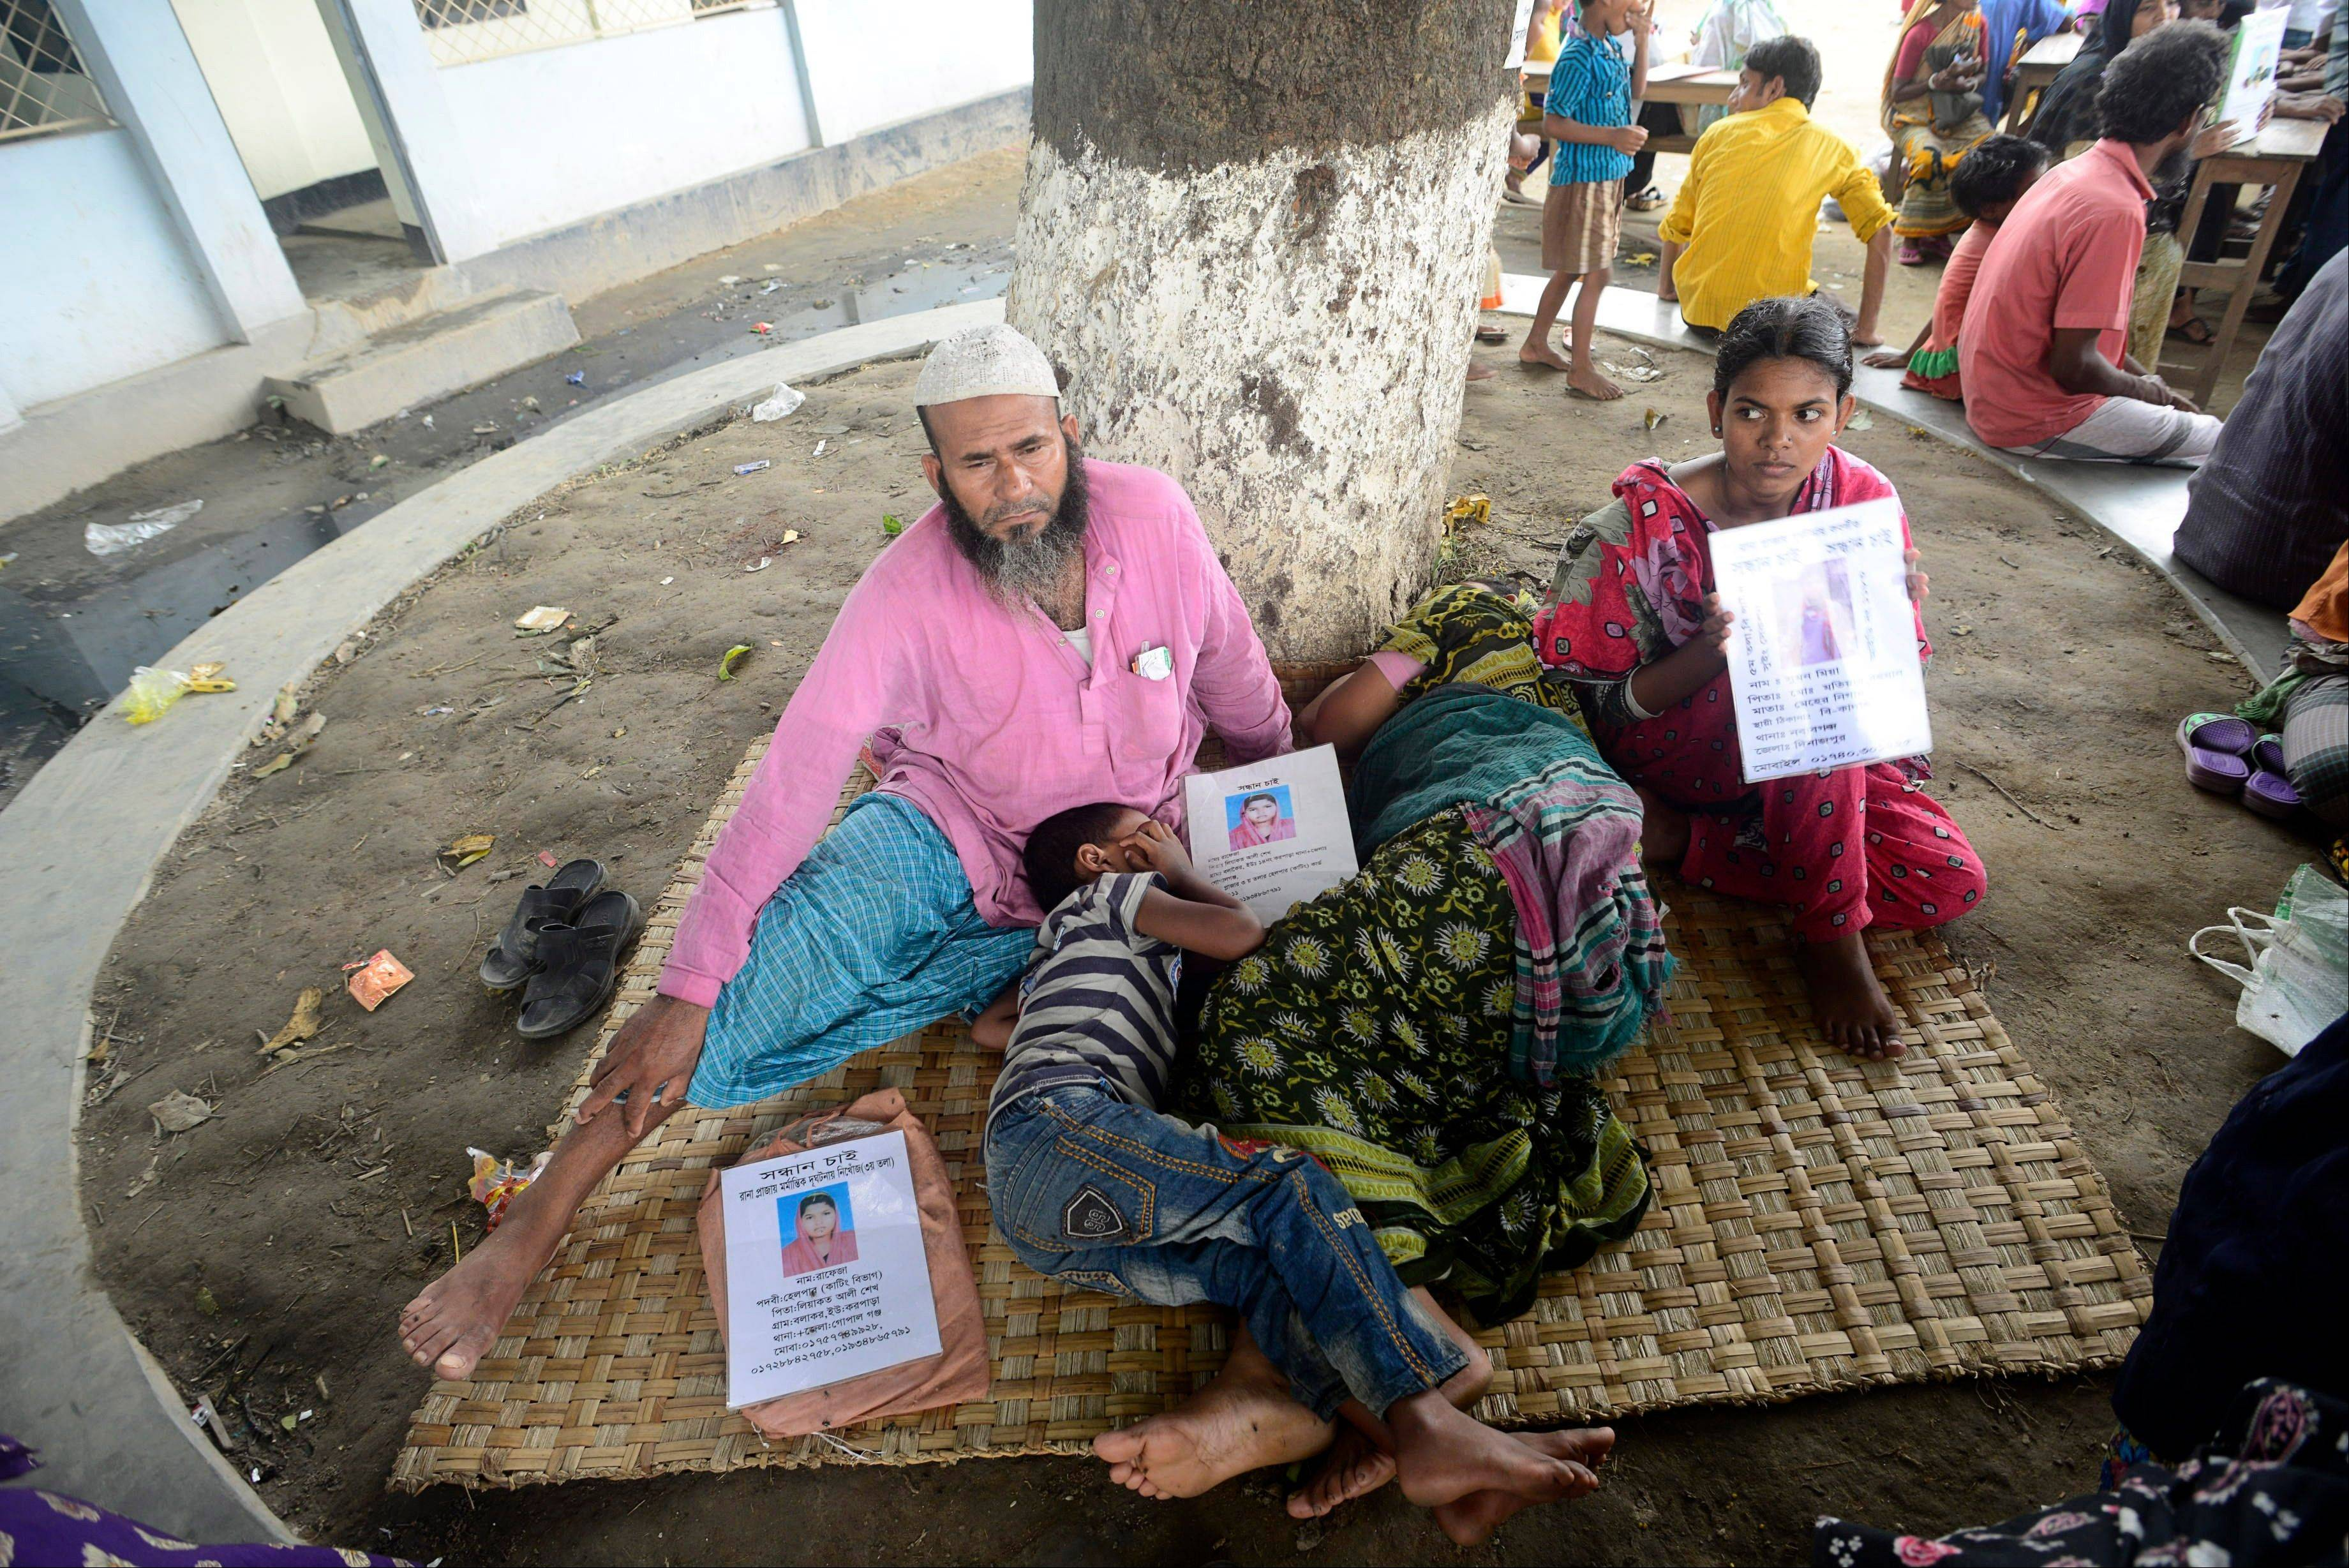 A Bangladeshi man sits Saturday near his sleeping wife and son, with portraits of his missing daughter displayed at a makeshift morgue in Savar, near Dhaka, Bangladesh.